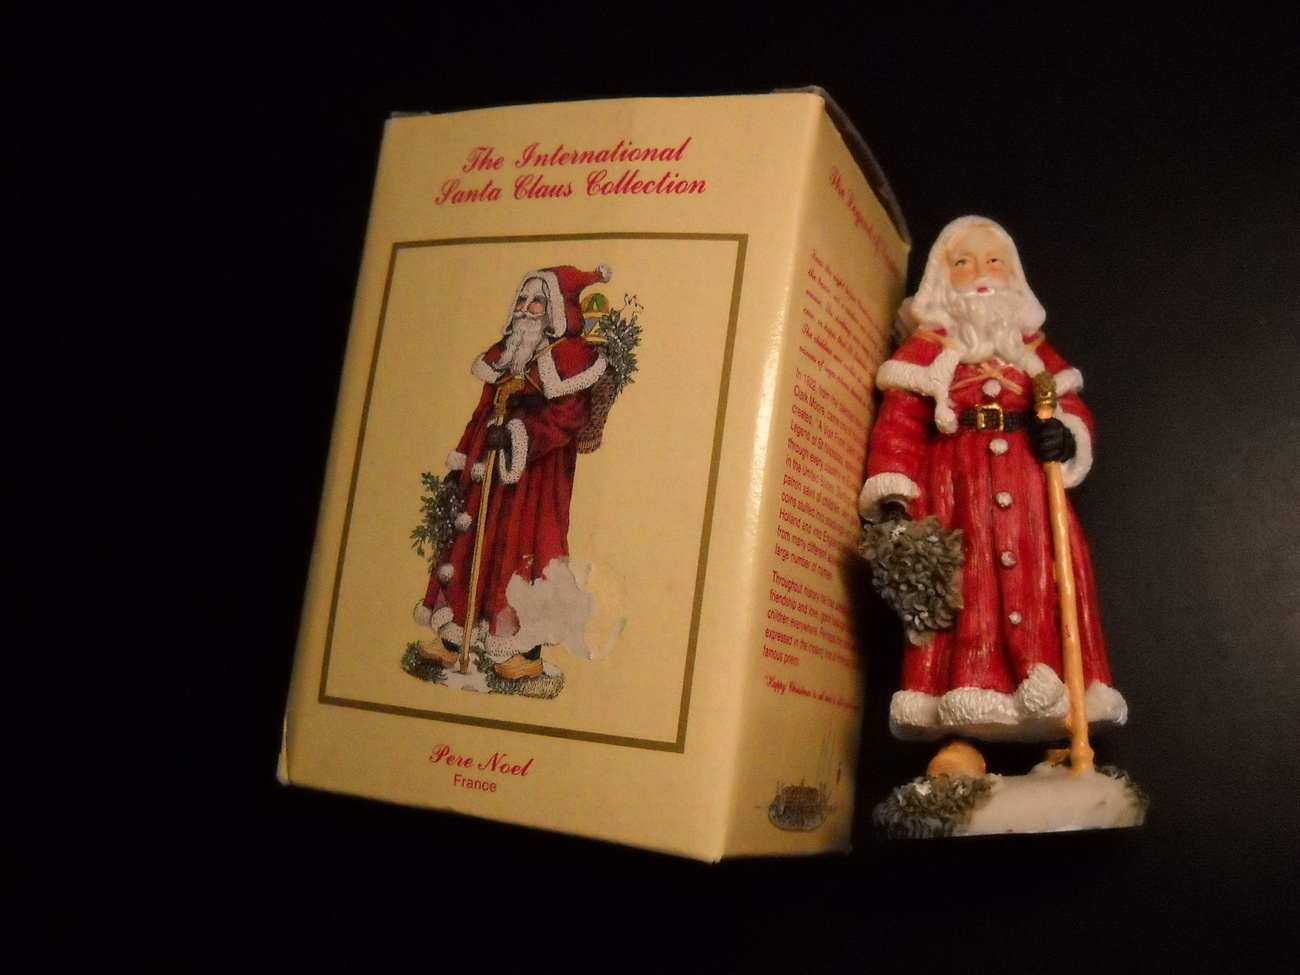 International santa claus collection pere and 20 similar items for International collection